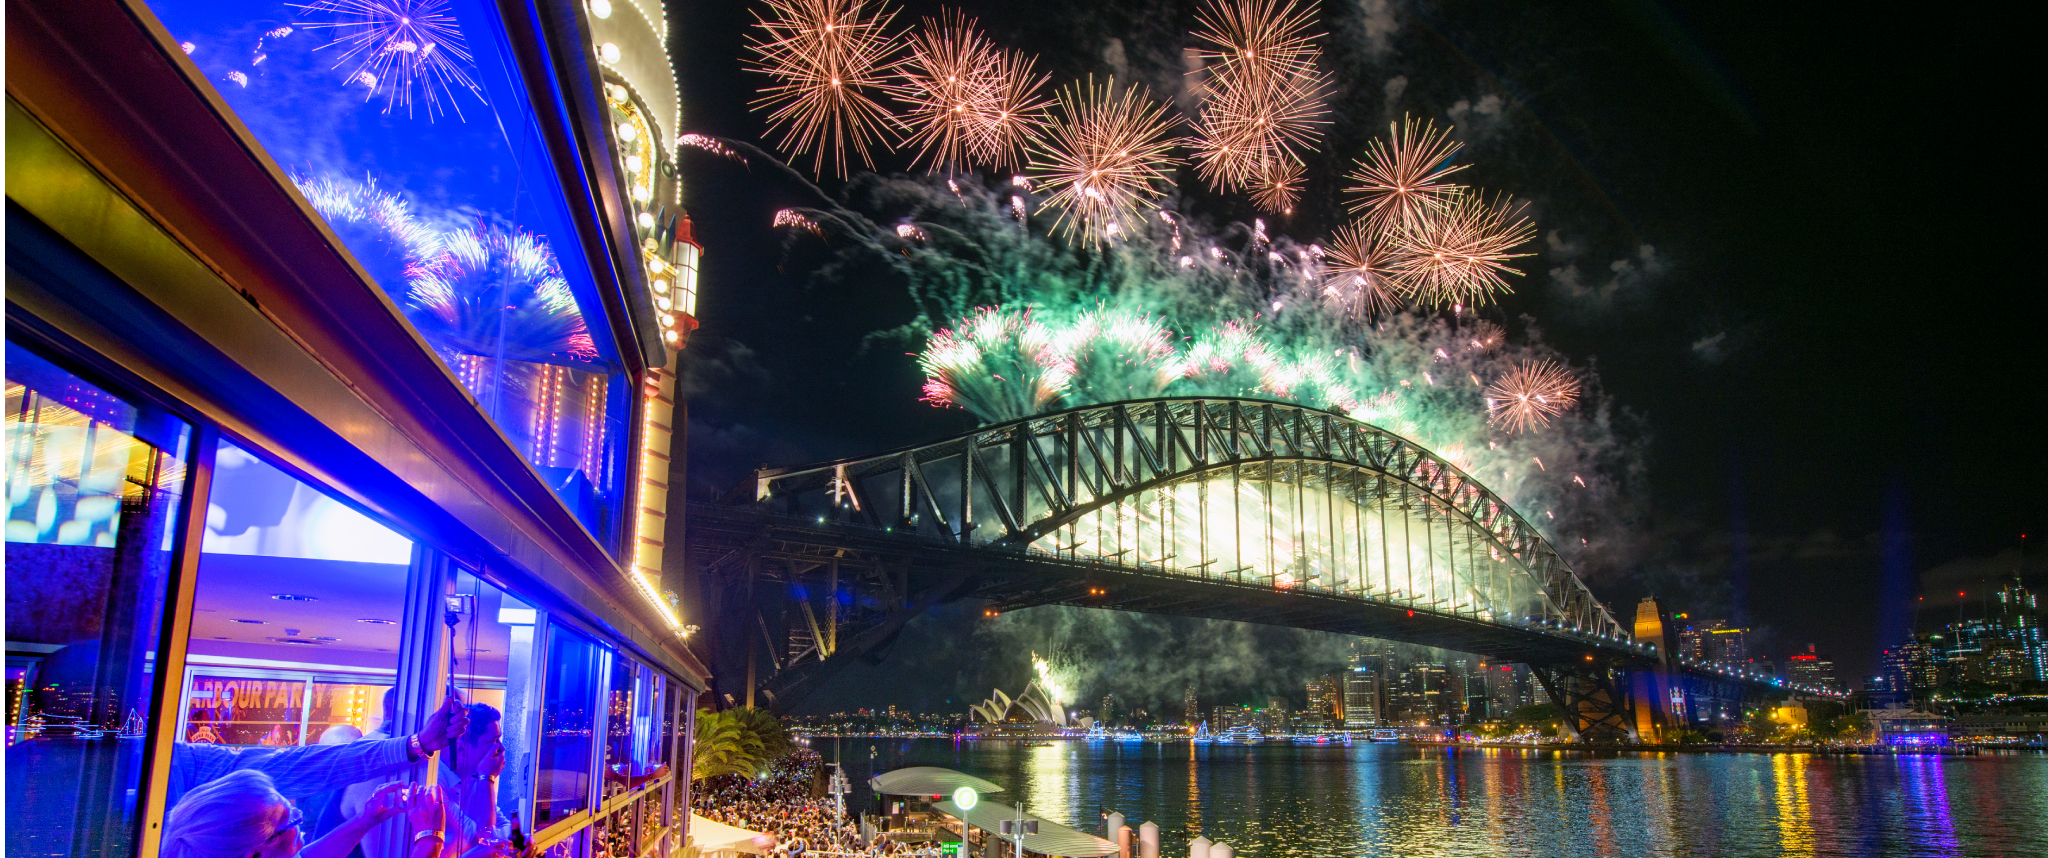 harbour party nye 2017 new years eve at luna park sydney